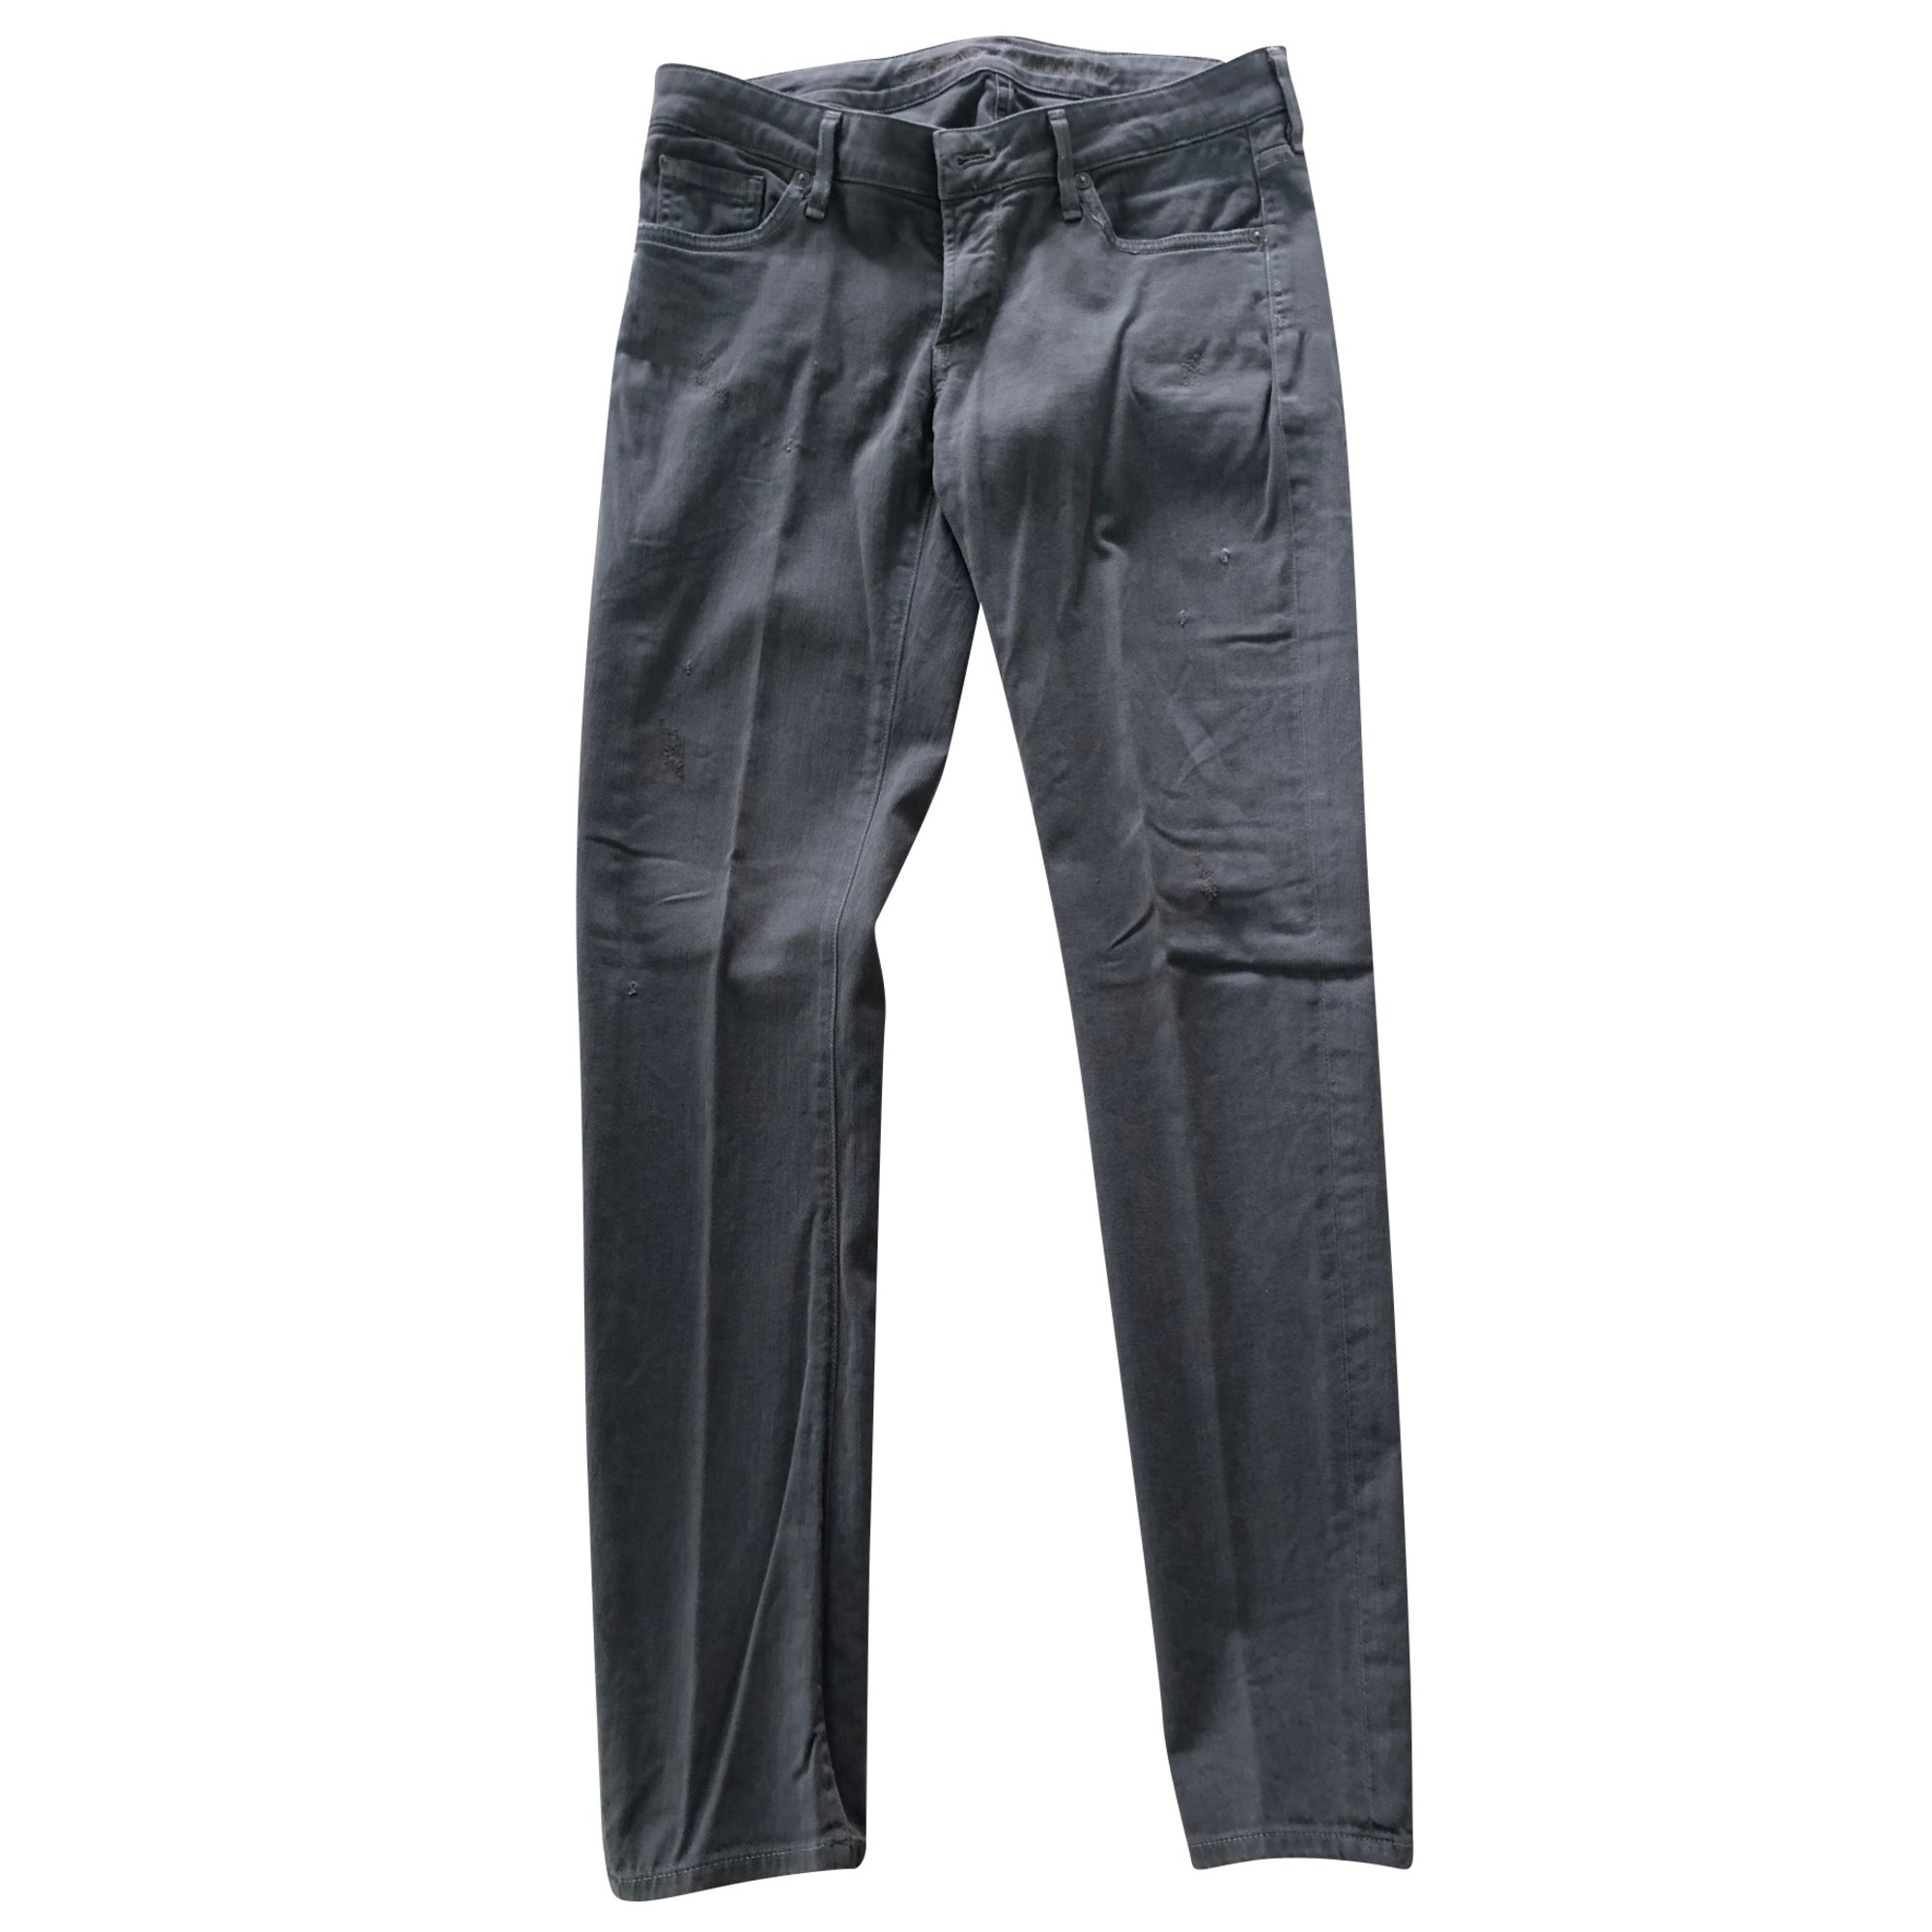 Jeans droit CITIZENS OF HUMANITY Gris, anthracite